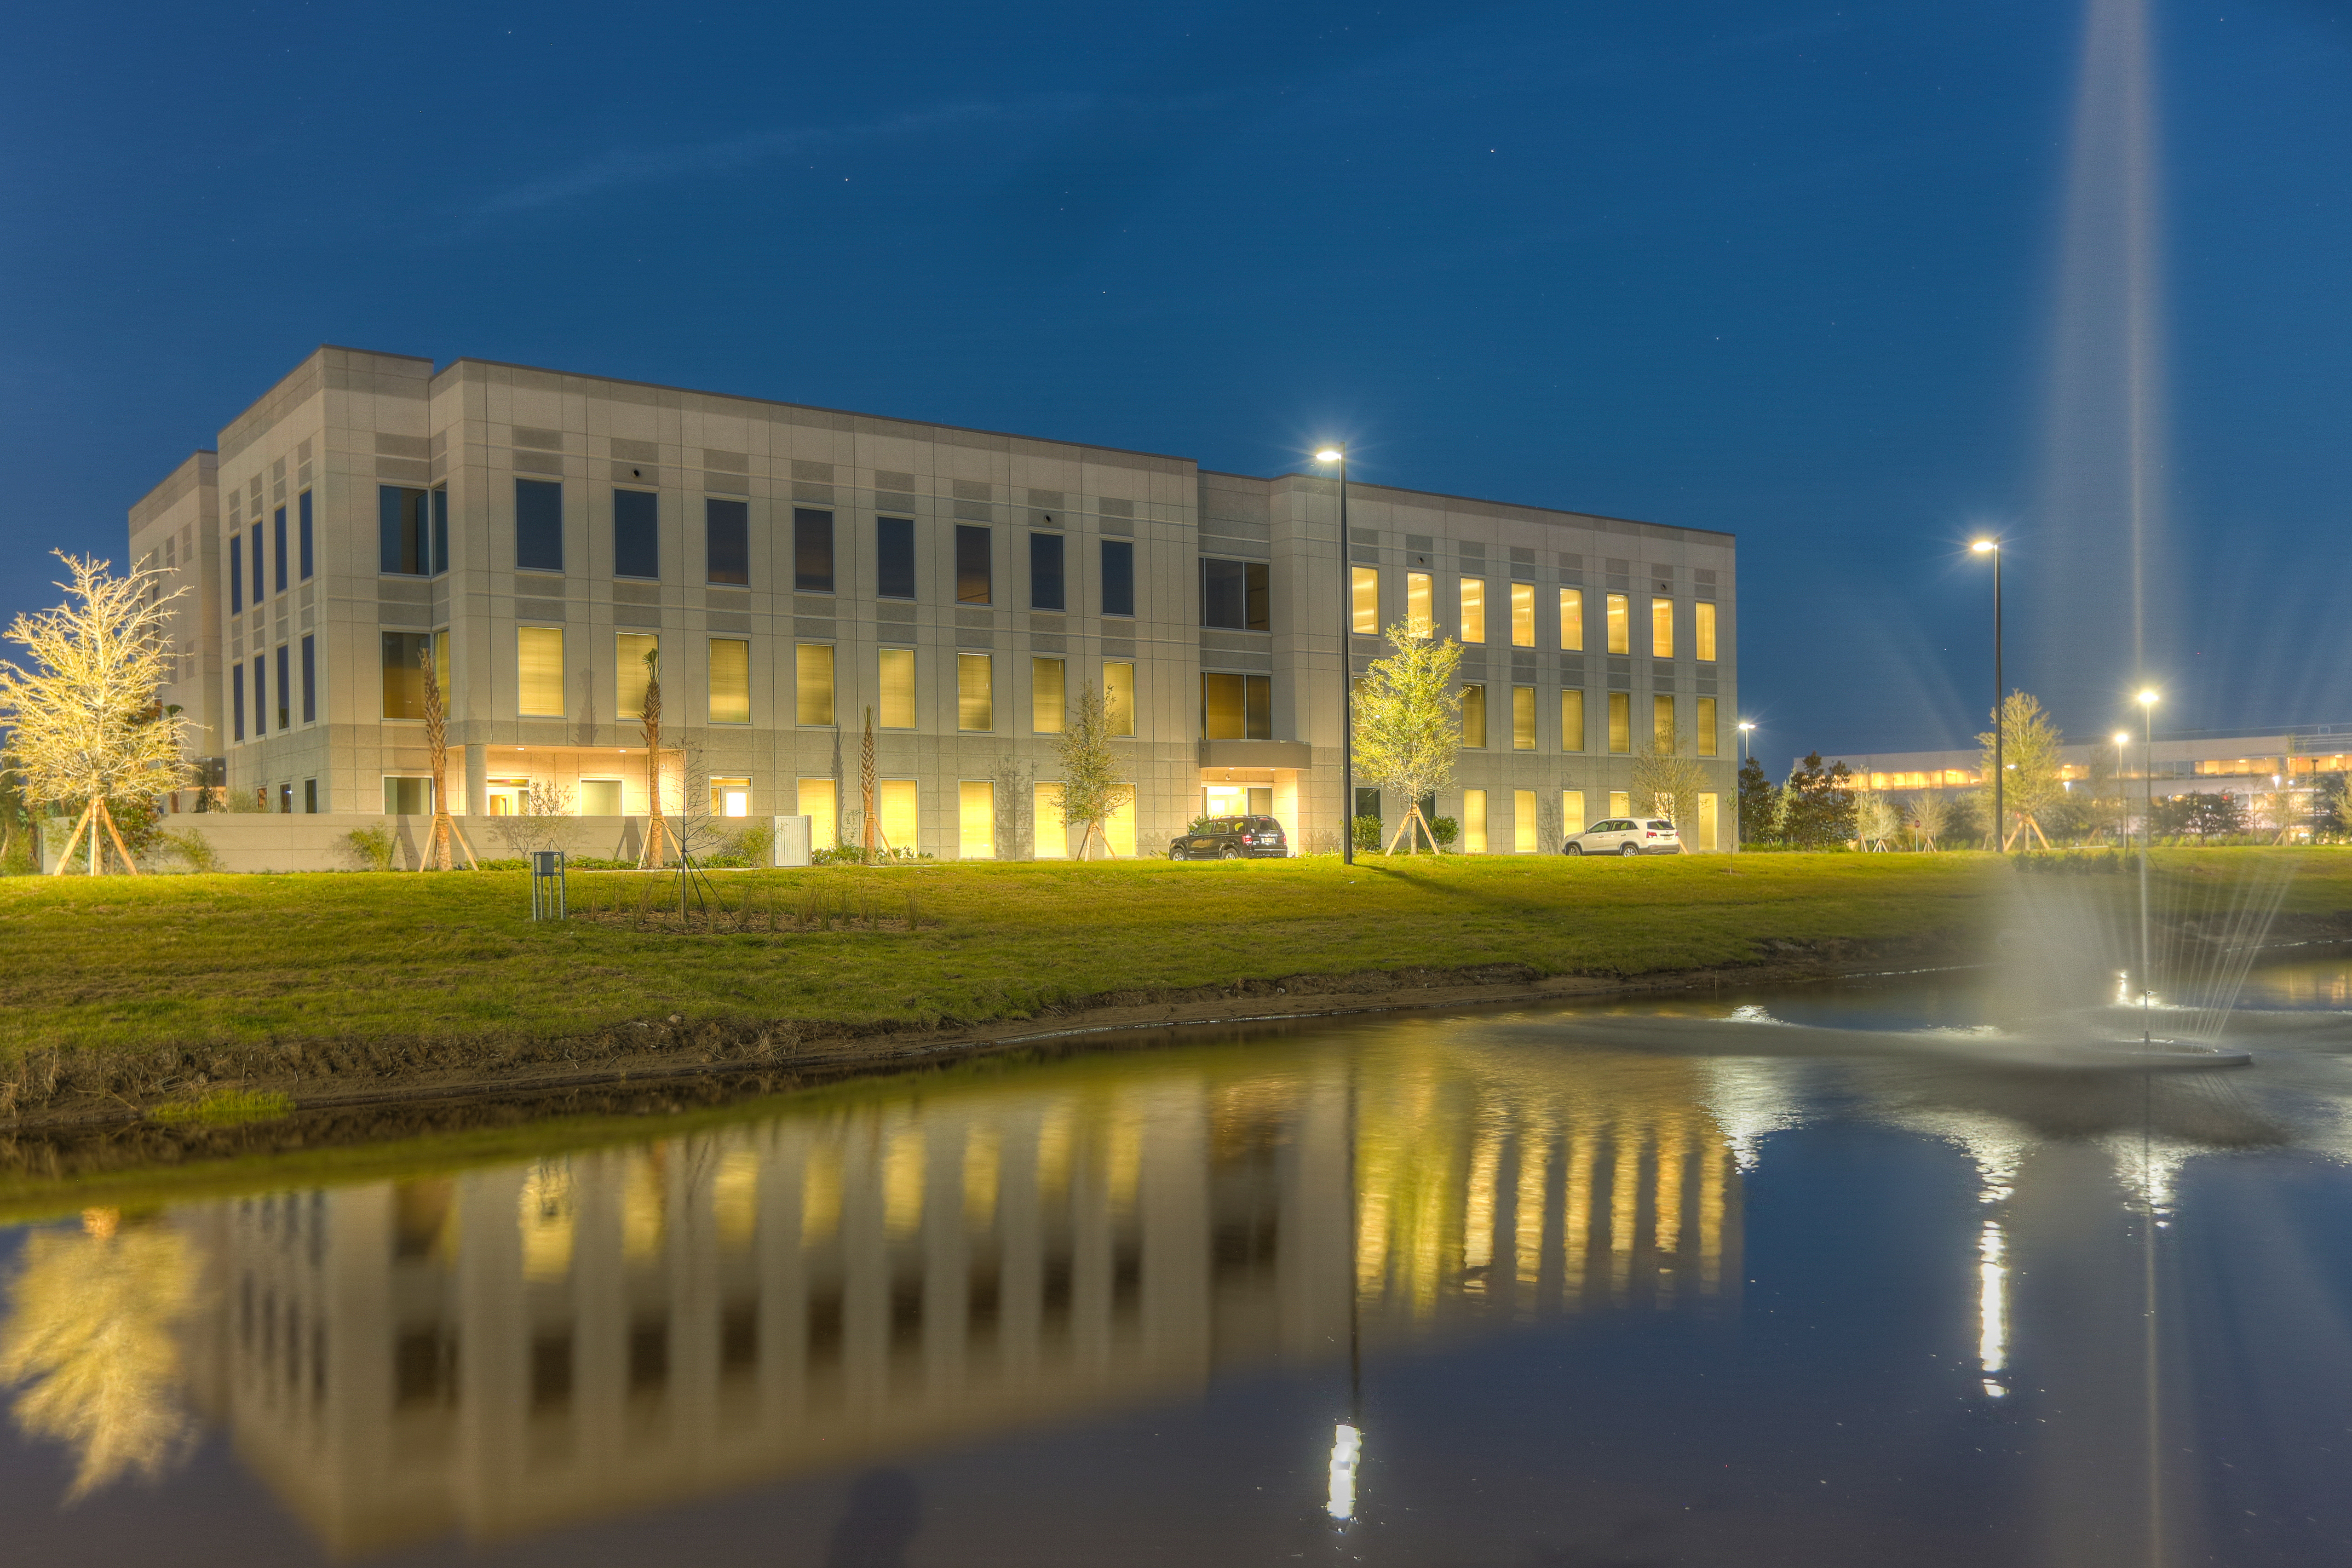 exterior shot of building in the evening